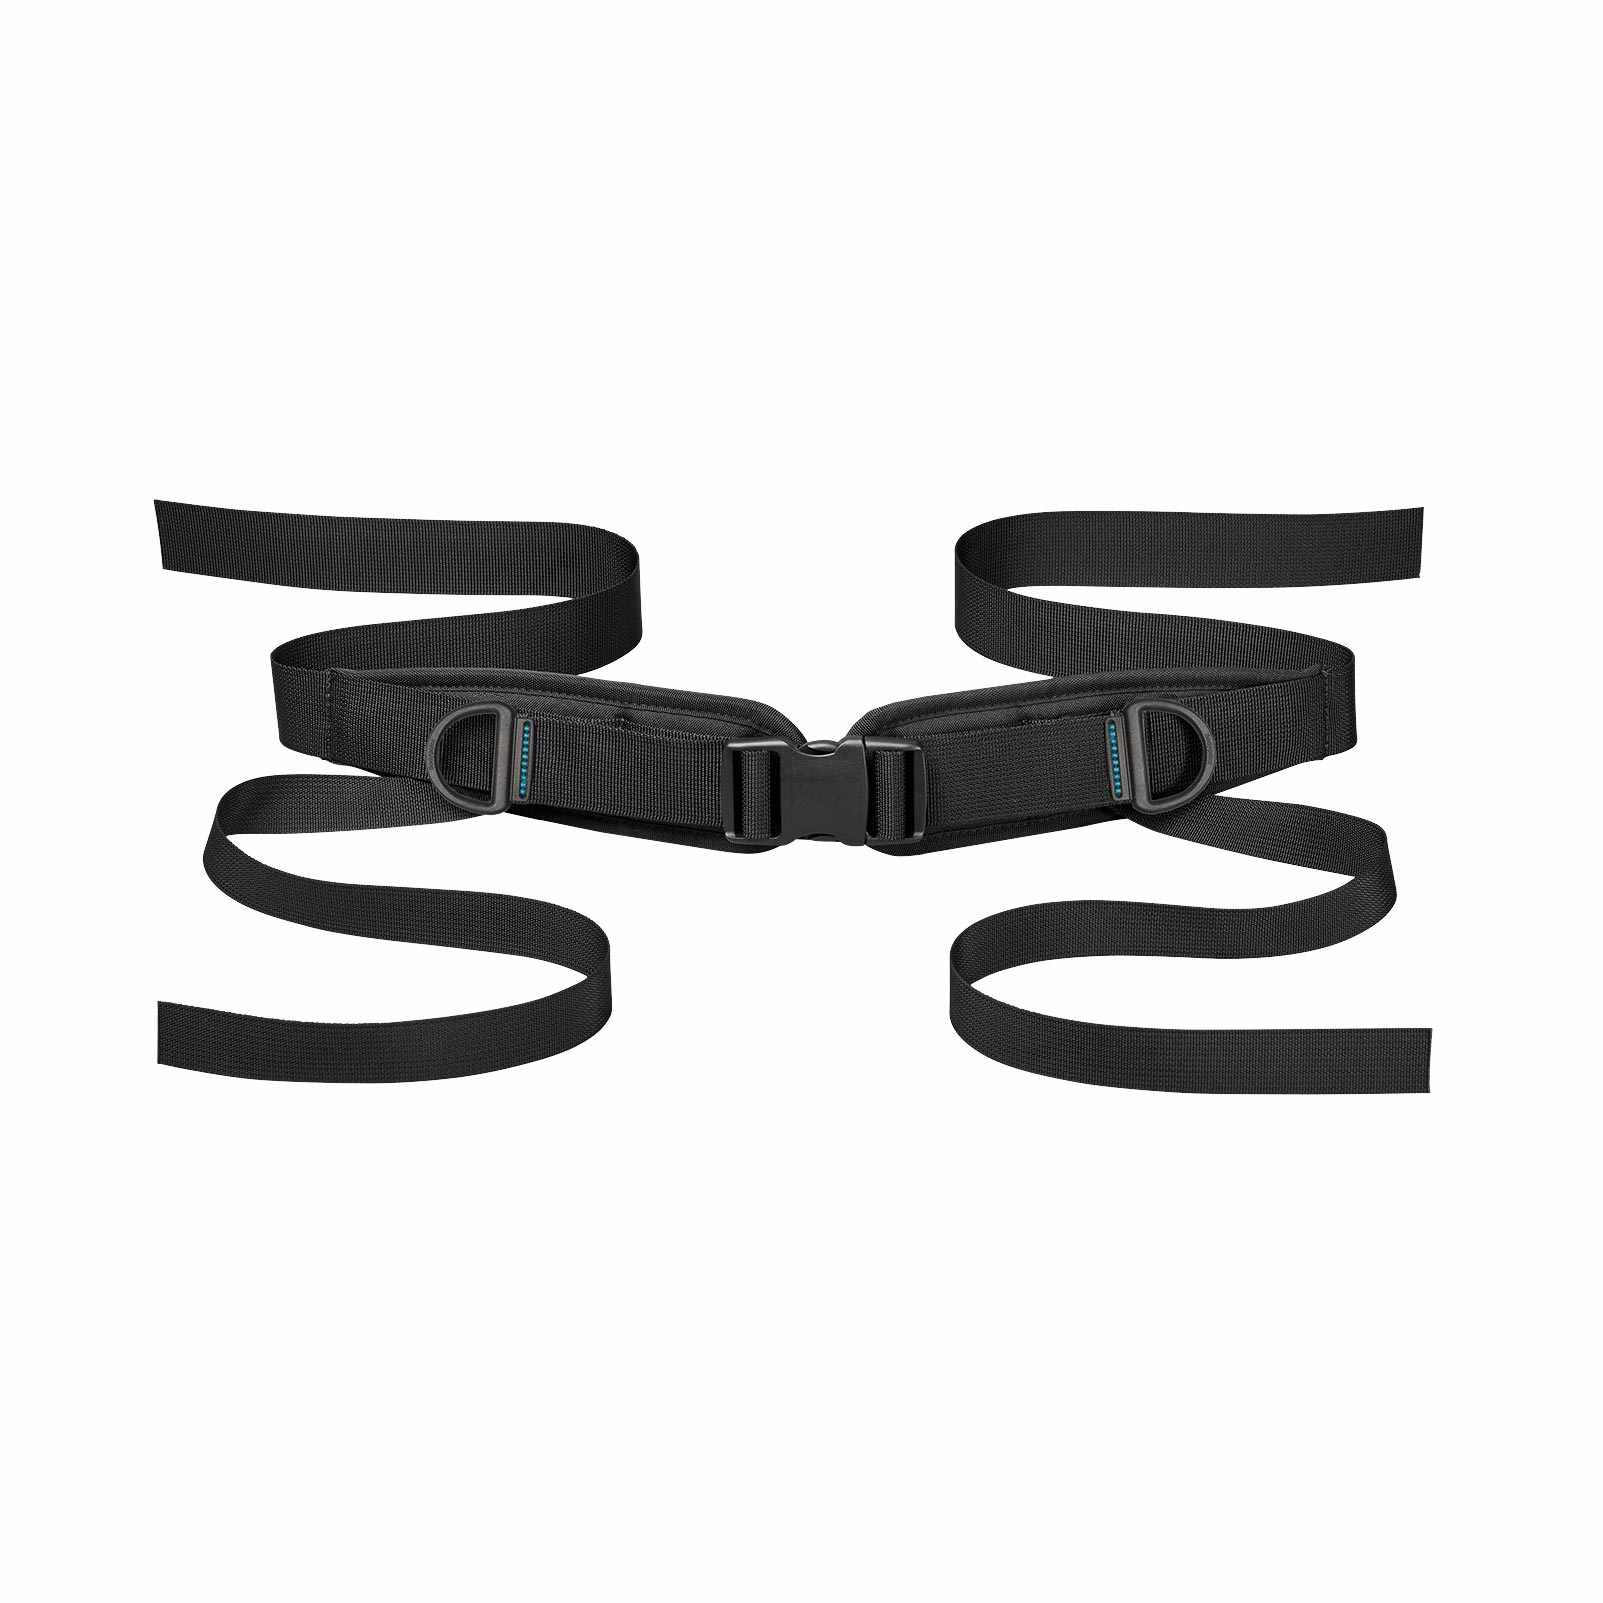 Bodypoint sub-ASIS compatible dual-pull four point padded hip belt with side release buckle - small